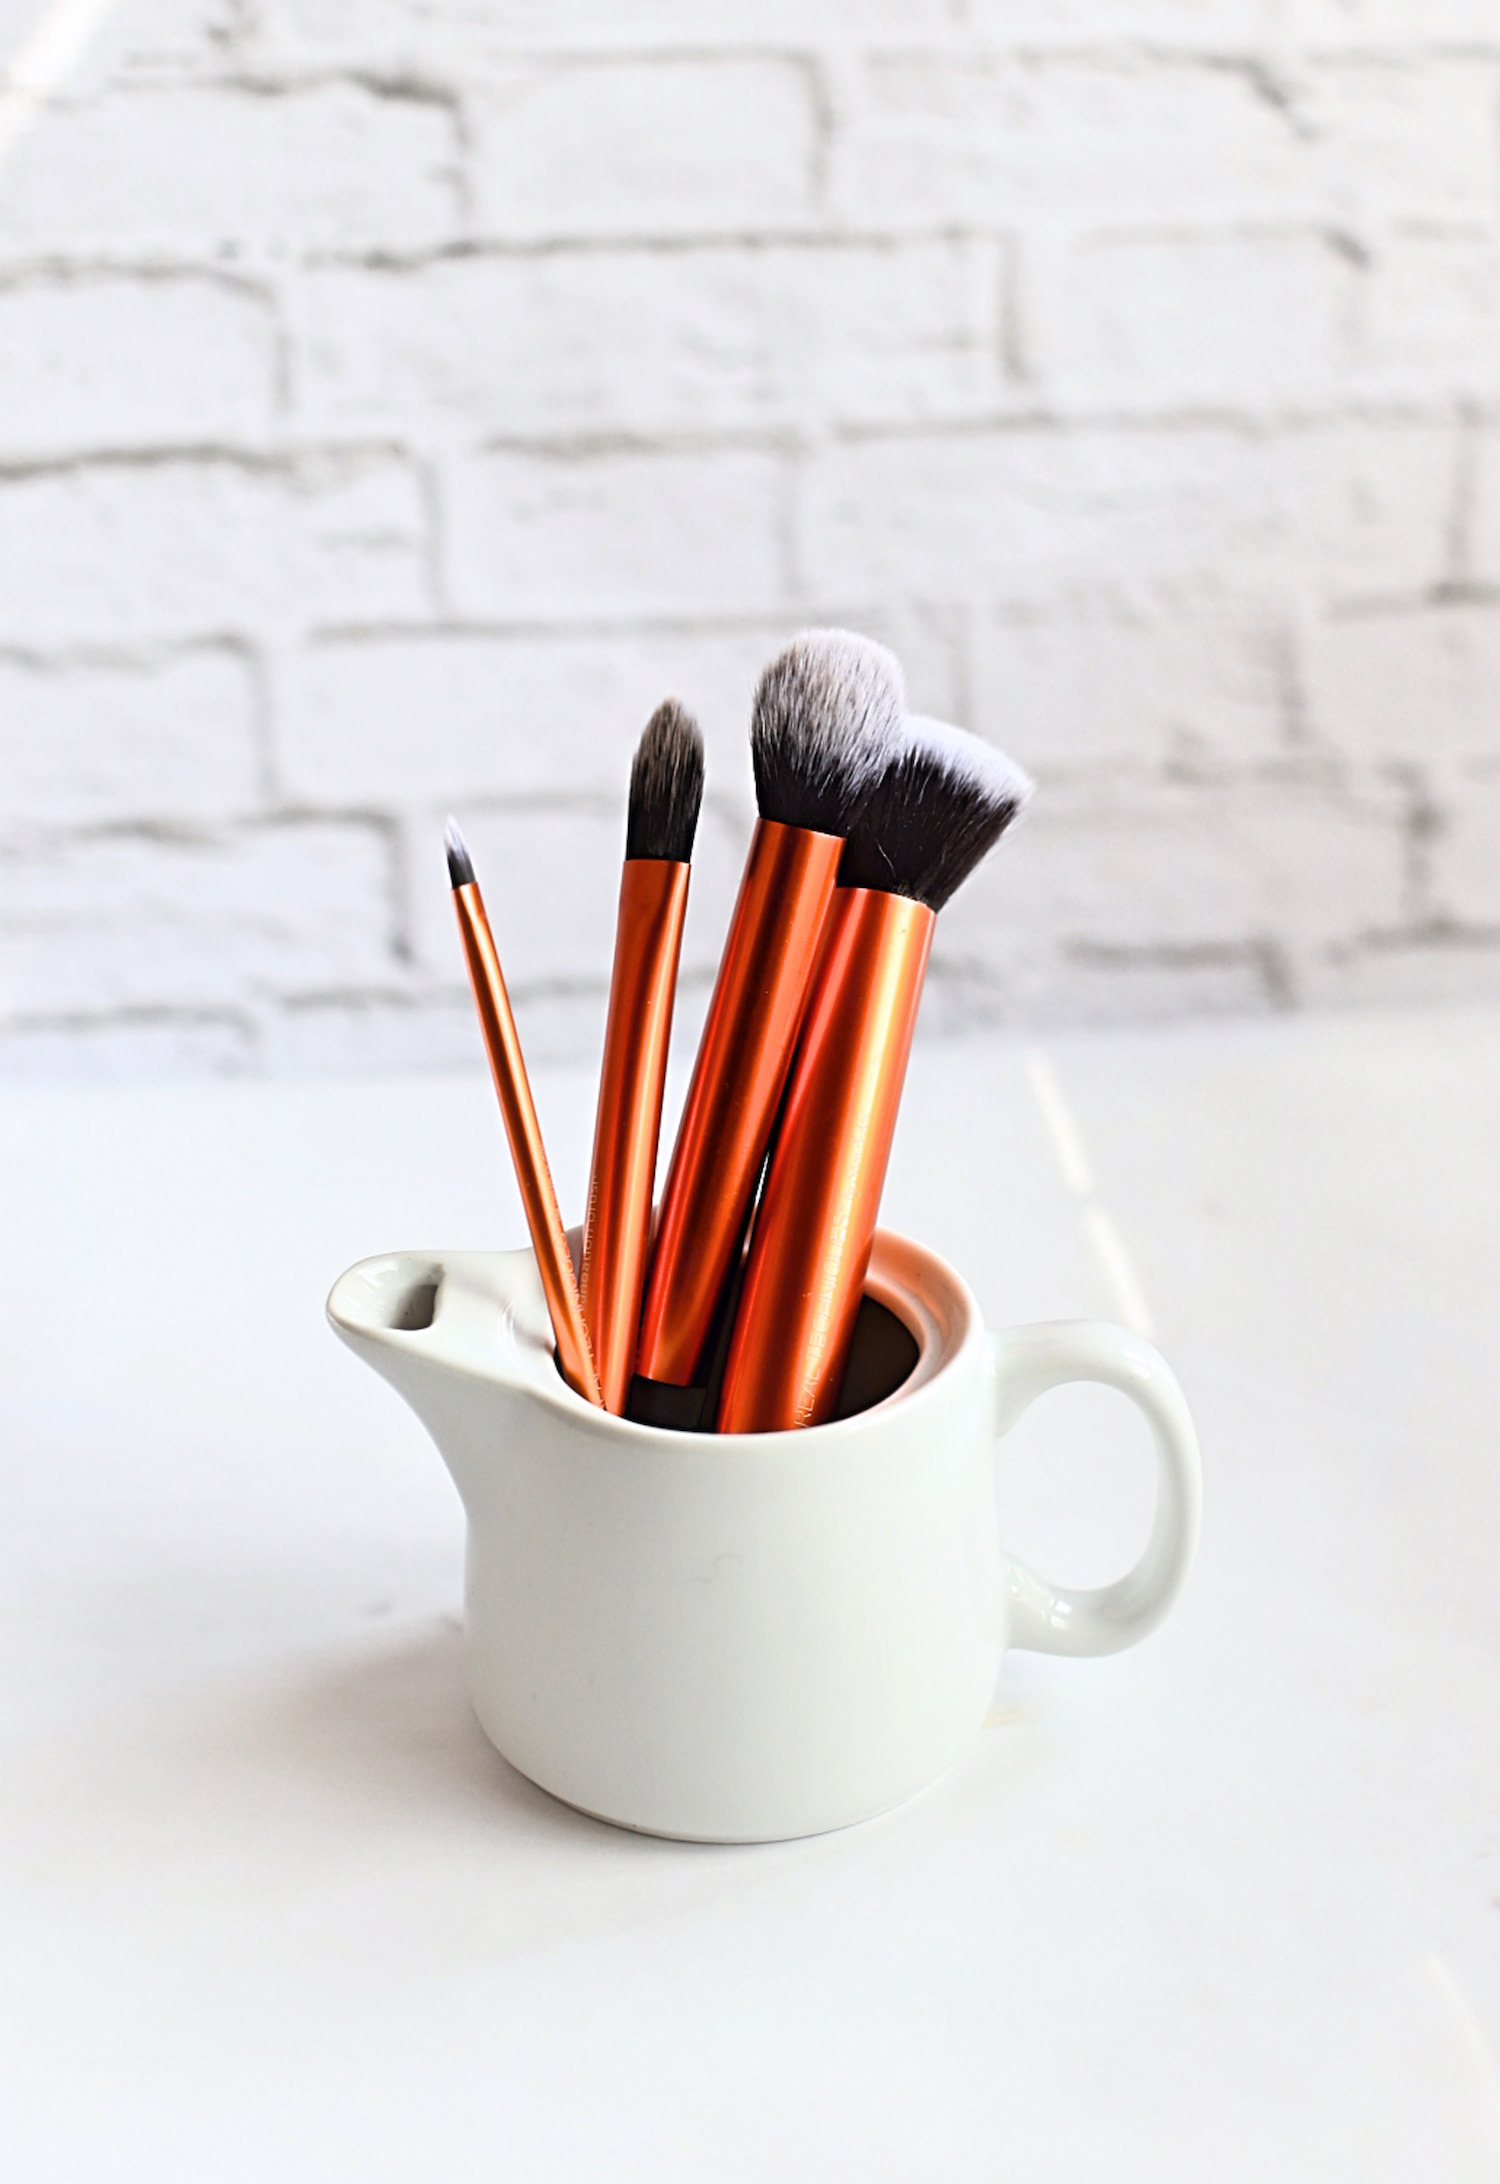 My Favorite Drugstore Makeup Products - Real Techniques Makeup Brushes | TrufflesandTrends.com